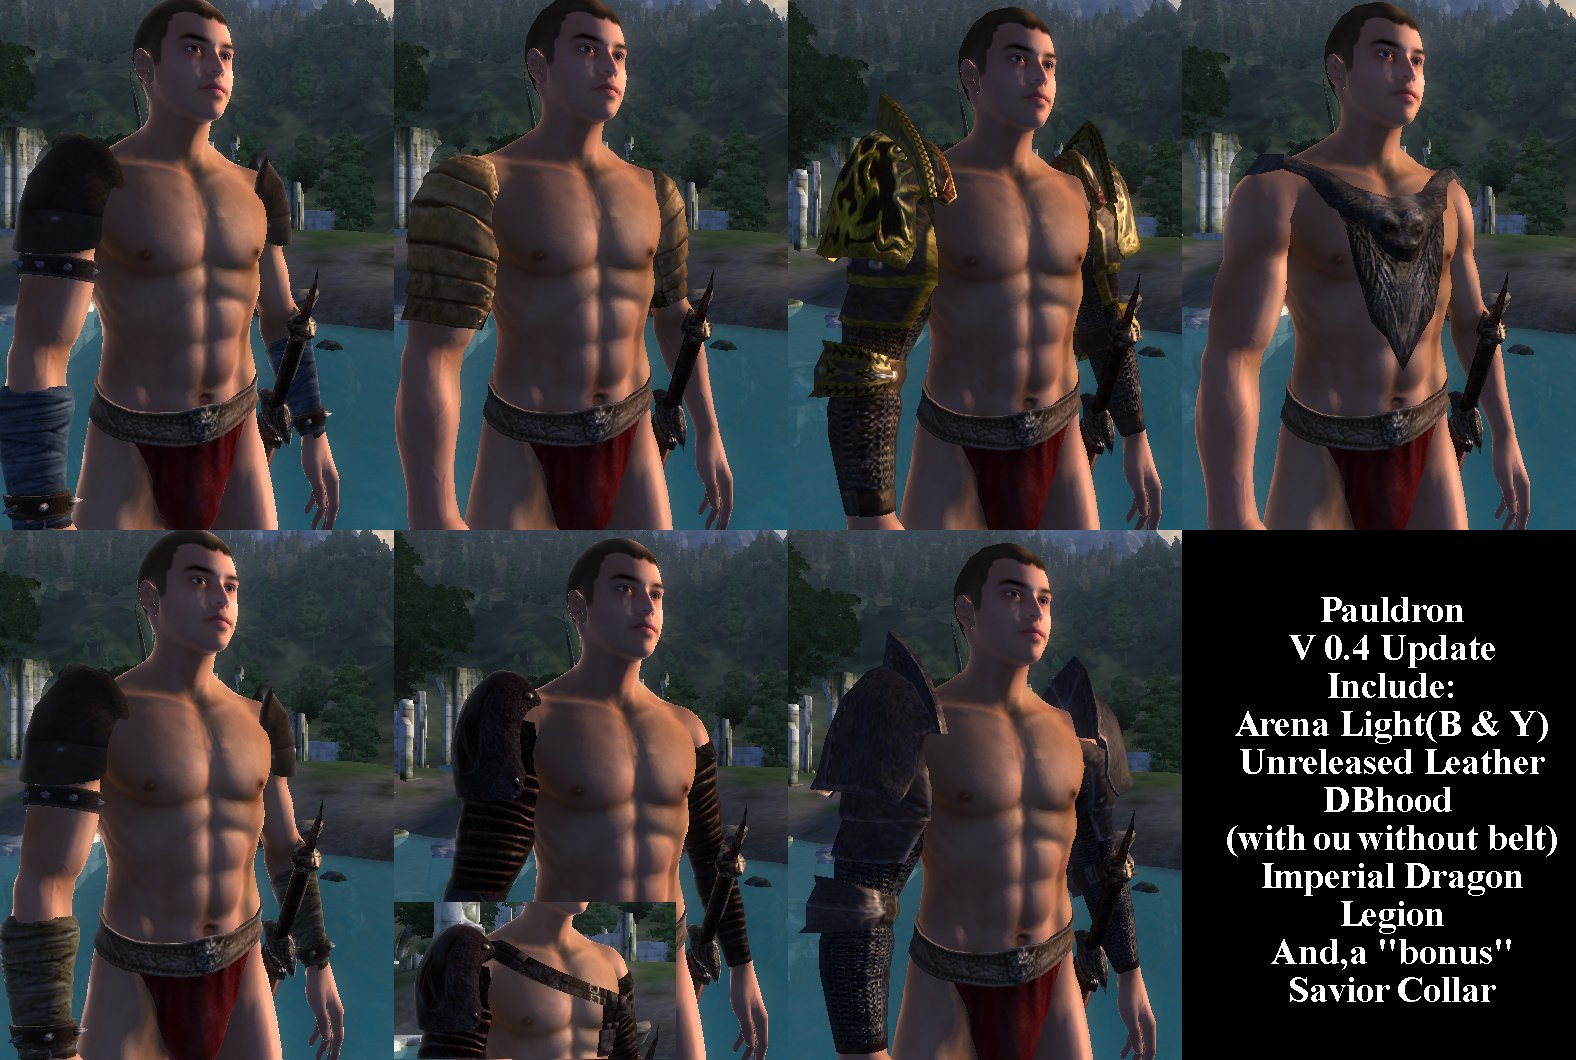 Elder scrolls arena nudity erotic picture